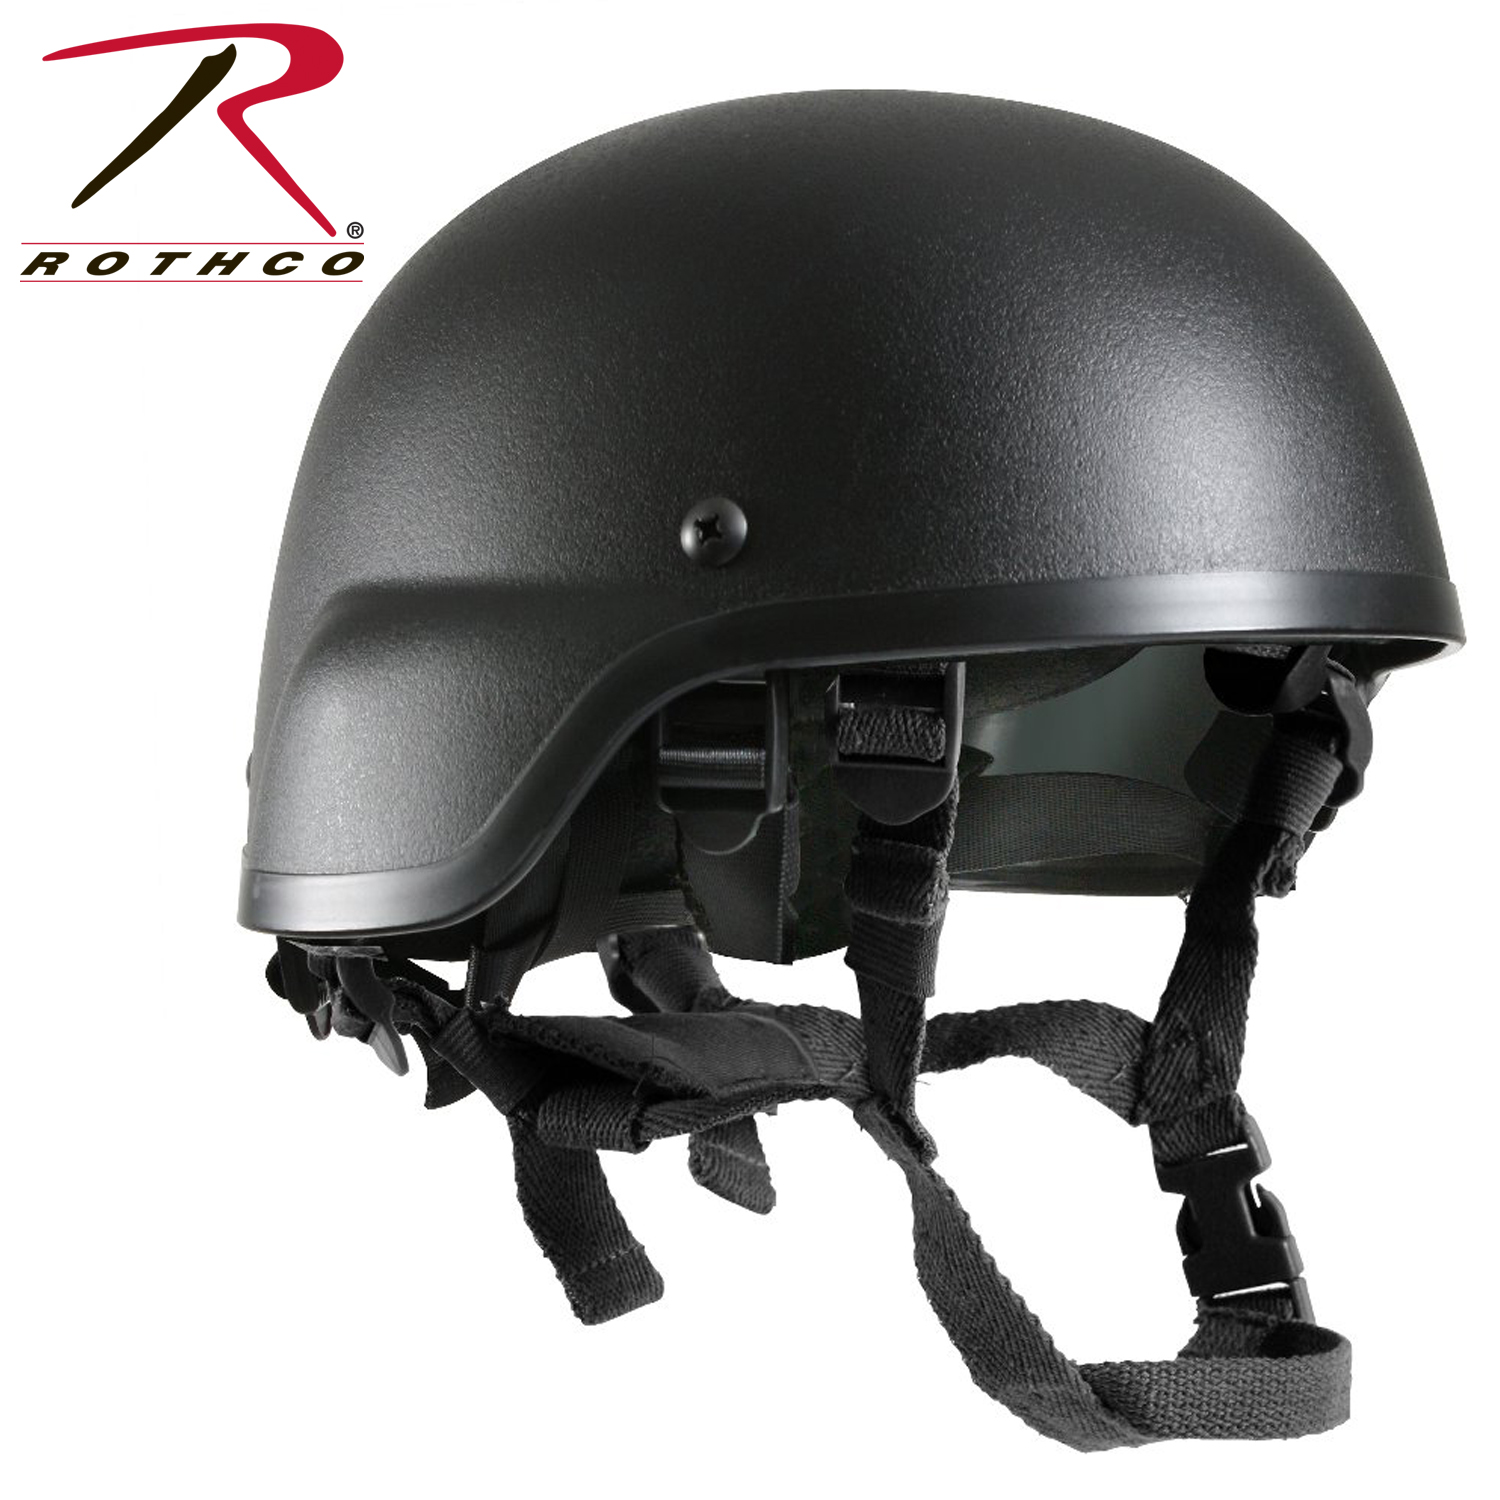 Rothco Chin Strap For MICH Helmet cae1f1236f